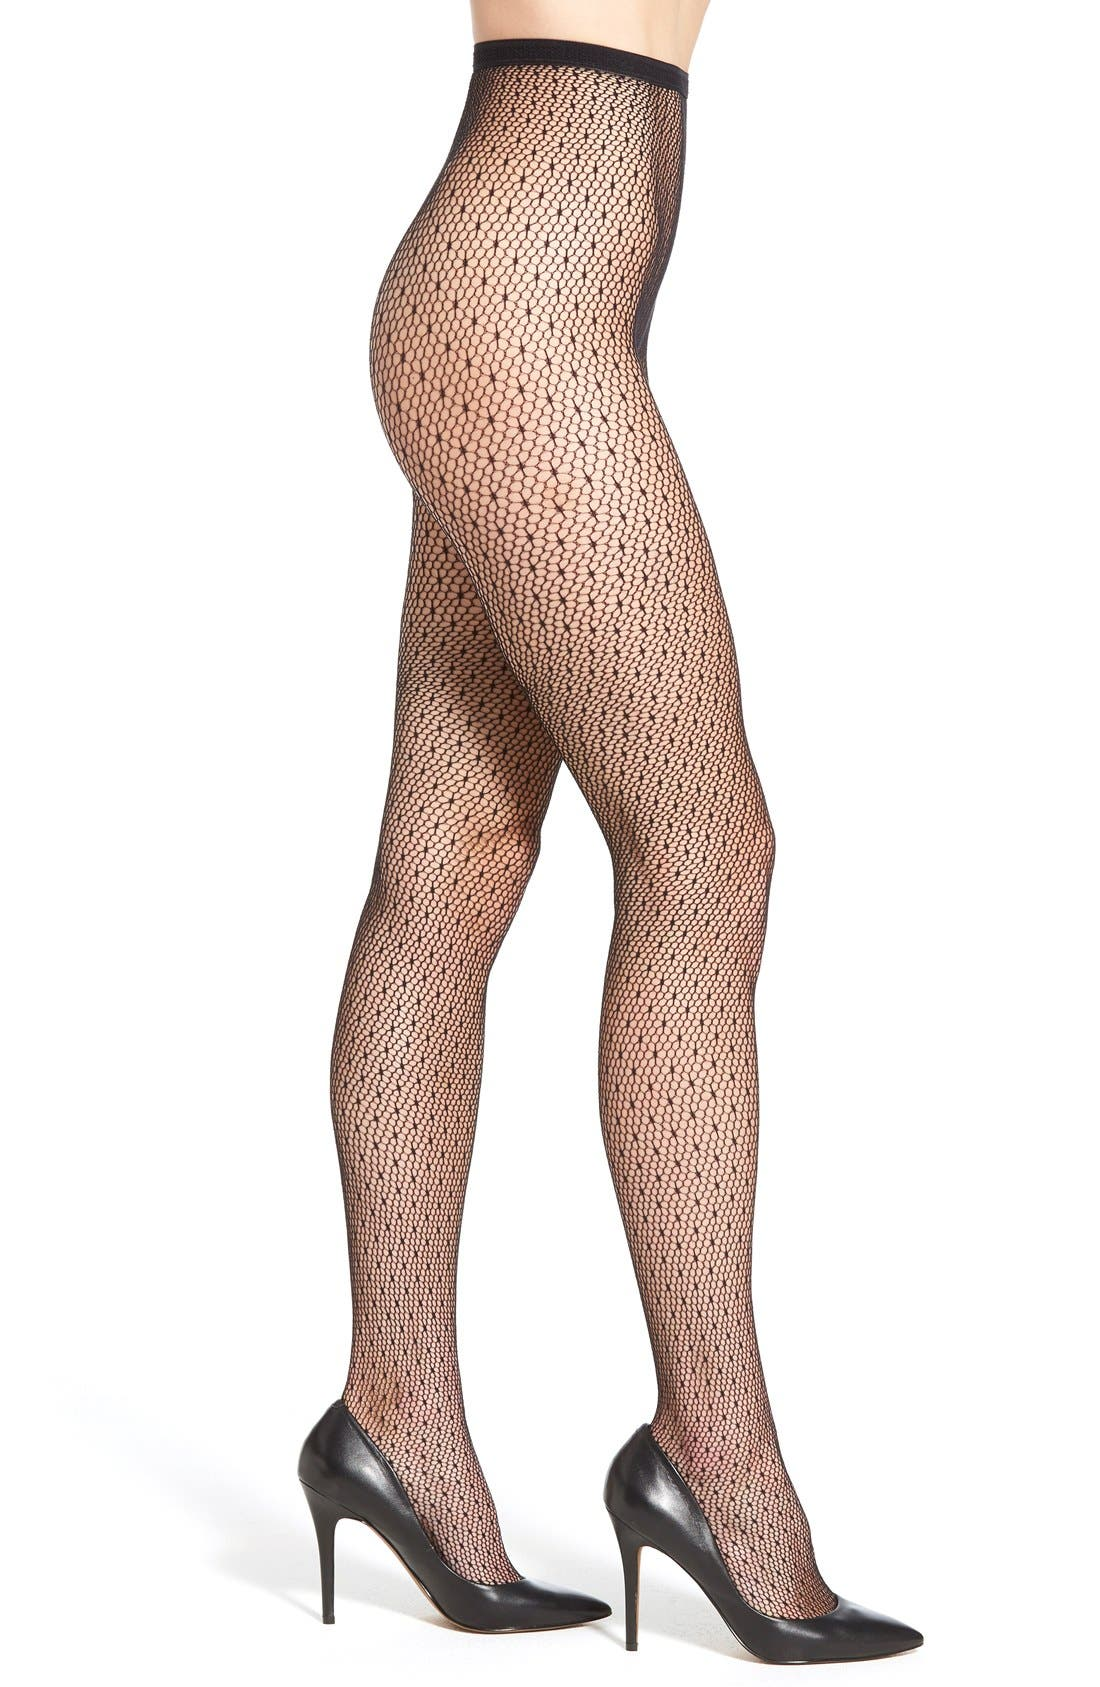 Main Image - DKNY 'Spring' Floral Lace Tights